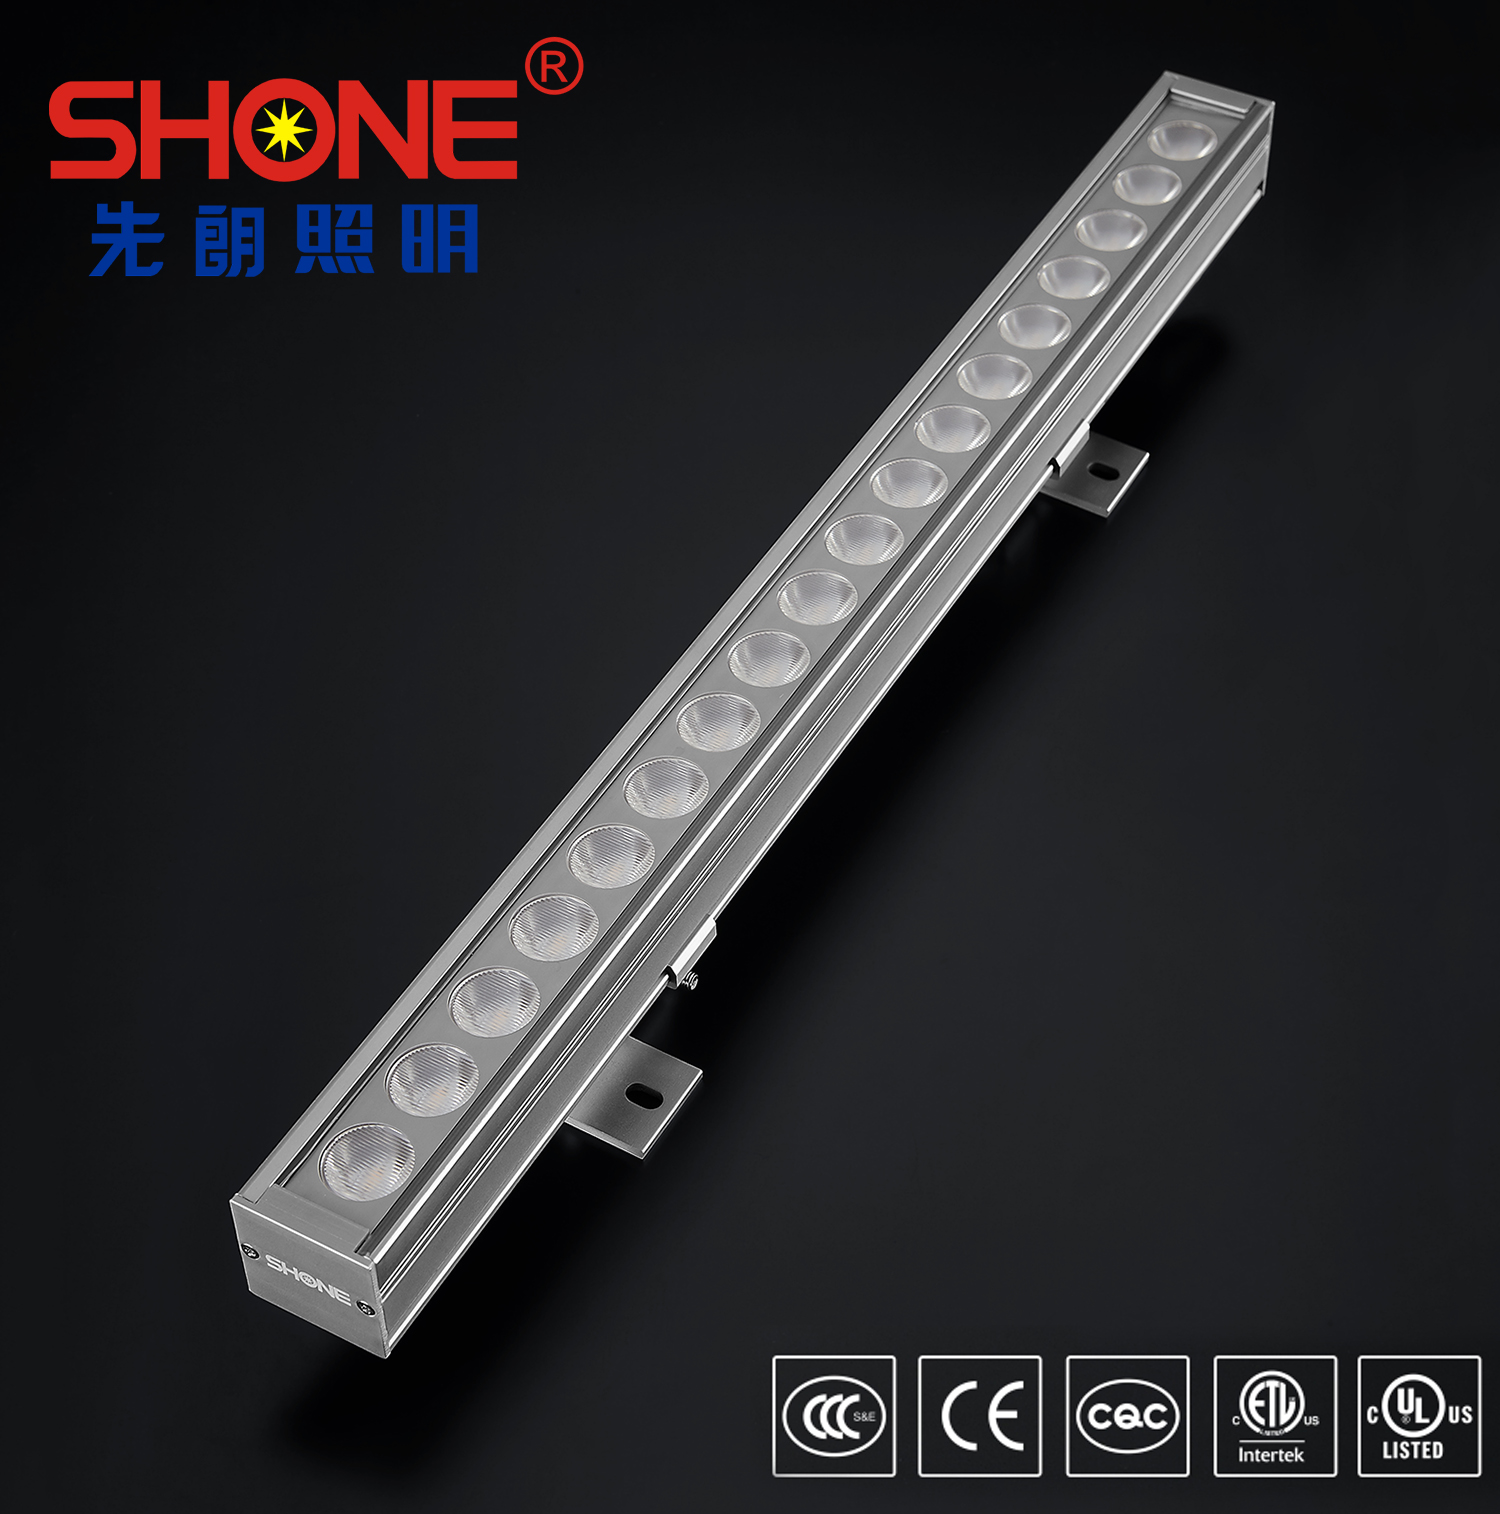 Shone Lighting 38x36 LED Linear Light Wall Washer with CE ETL Certificate IP66 for Outdoor Lighting